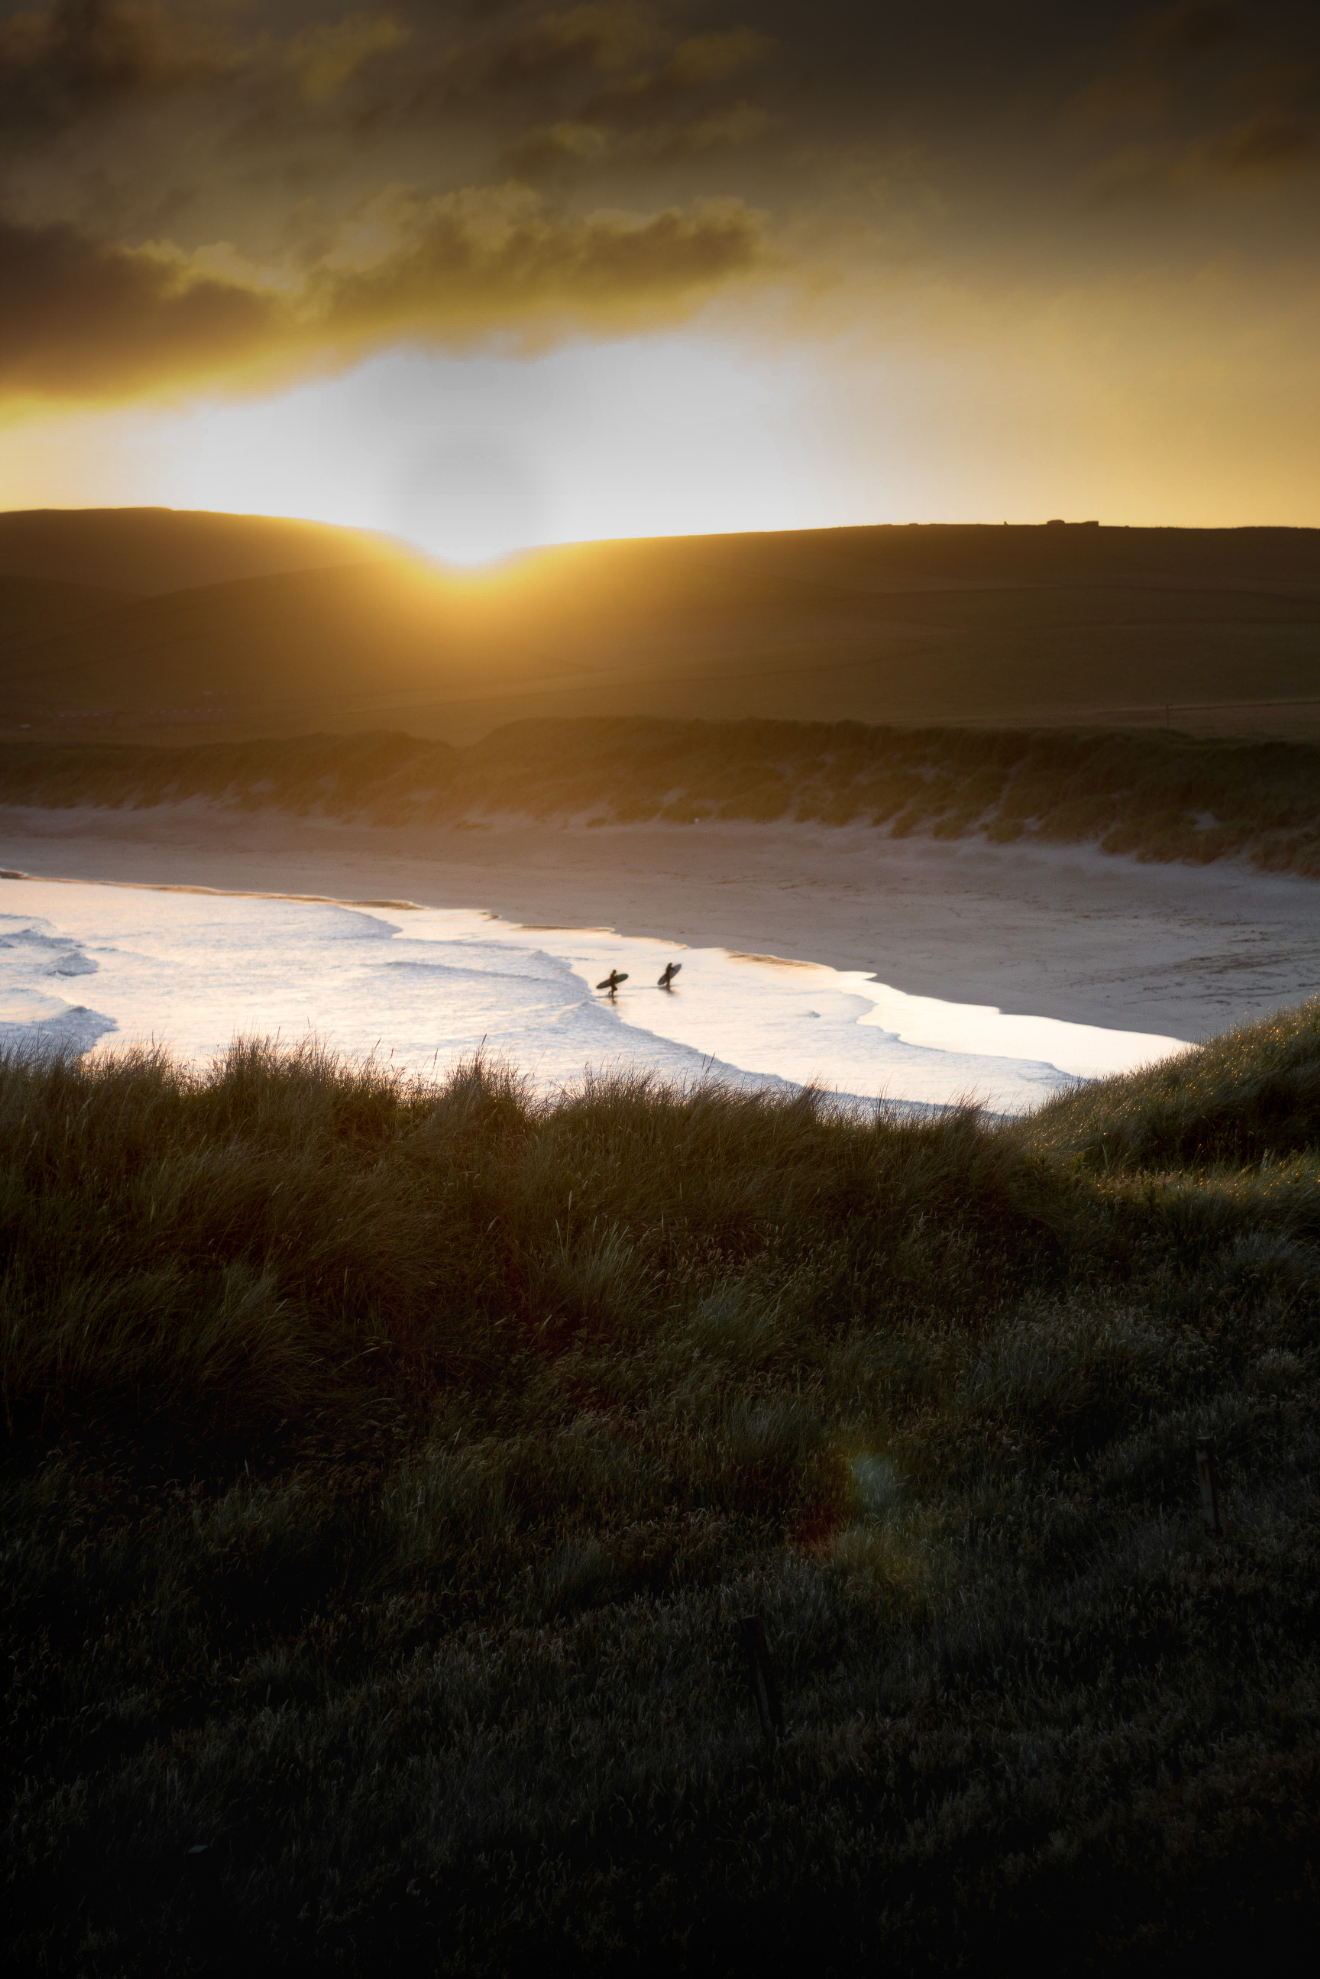 Sunset surfing at Quendale | Ritchie Williams